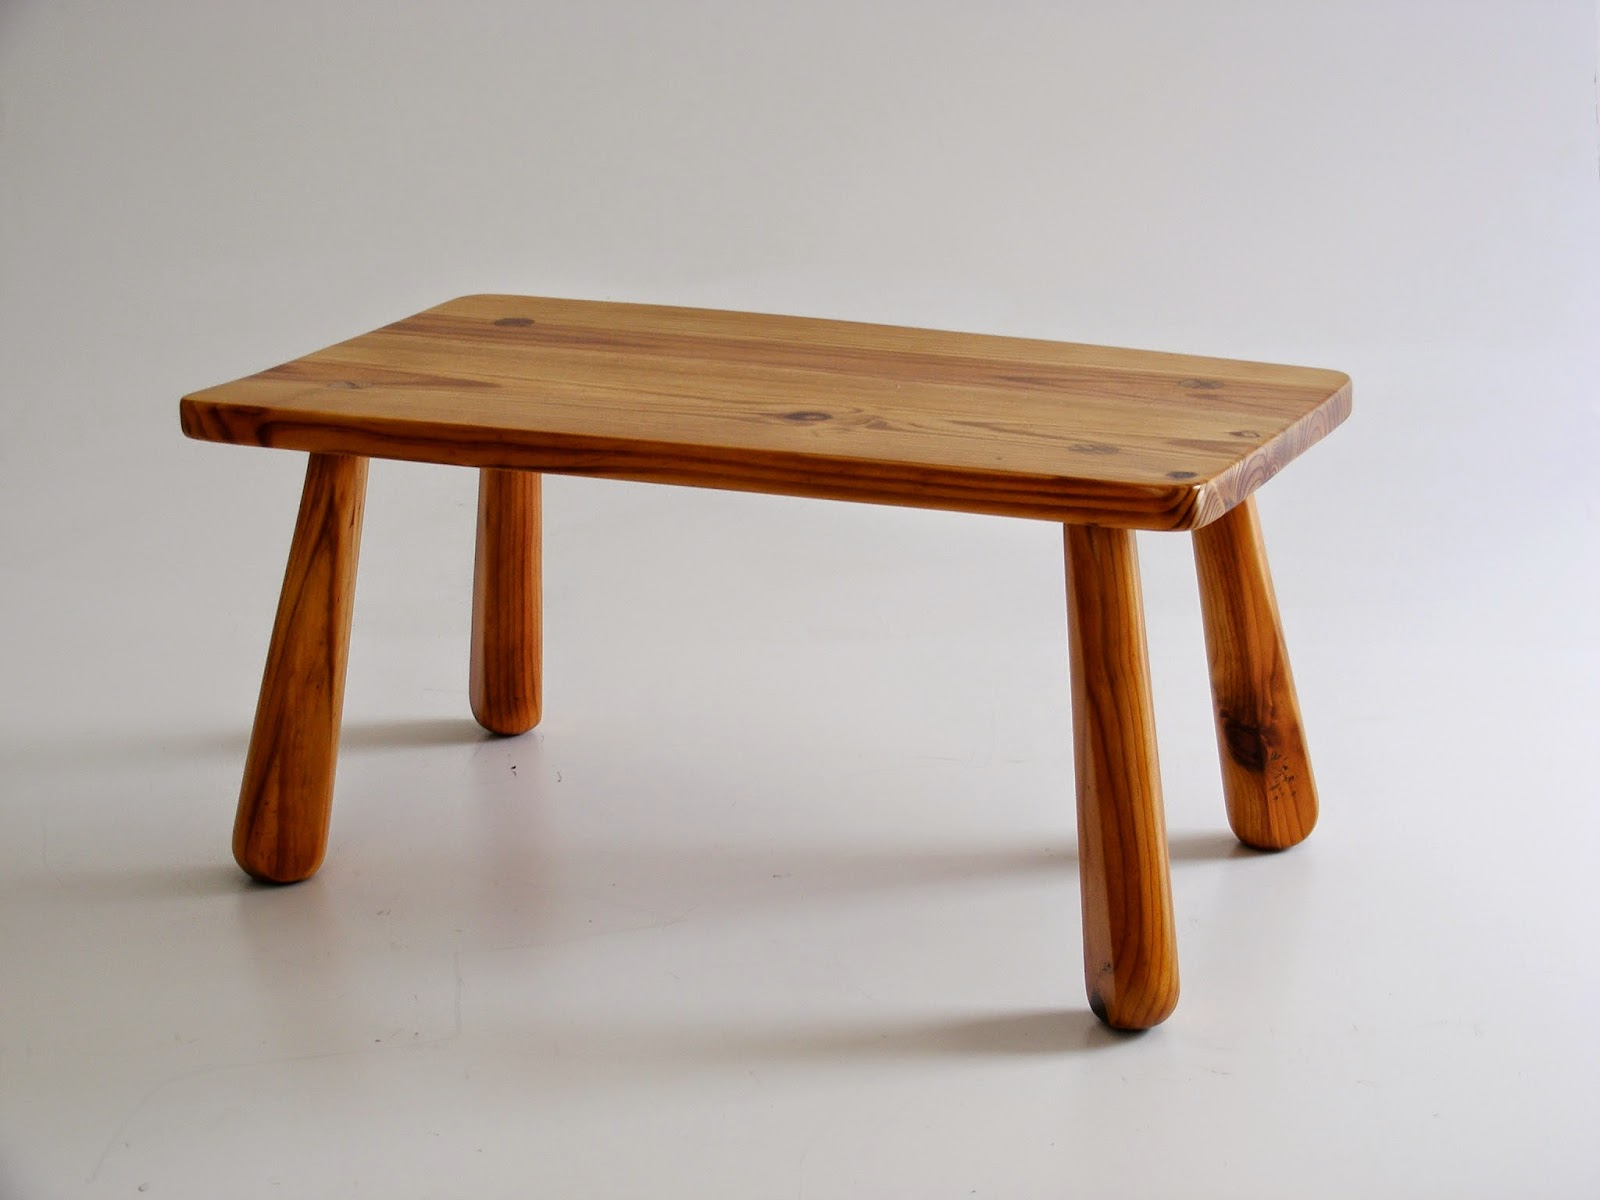 Beautiful Very Sweet Solid Pine Retro Coffee Table With Fat Splayed Legs.